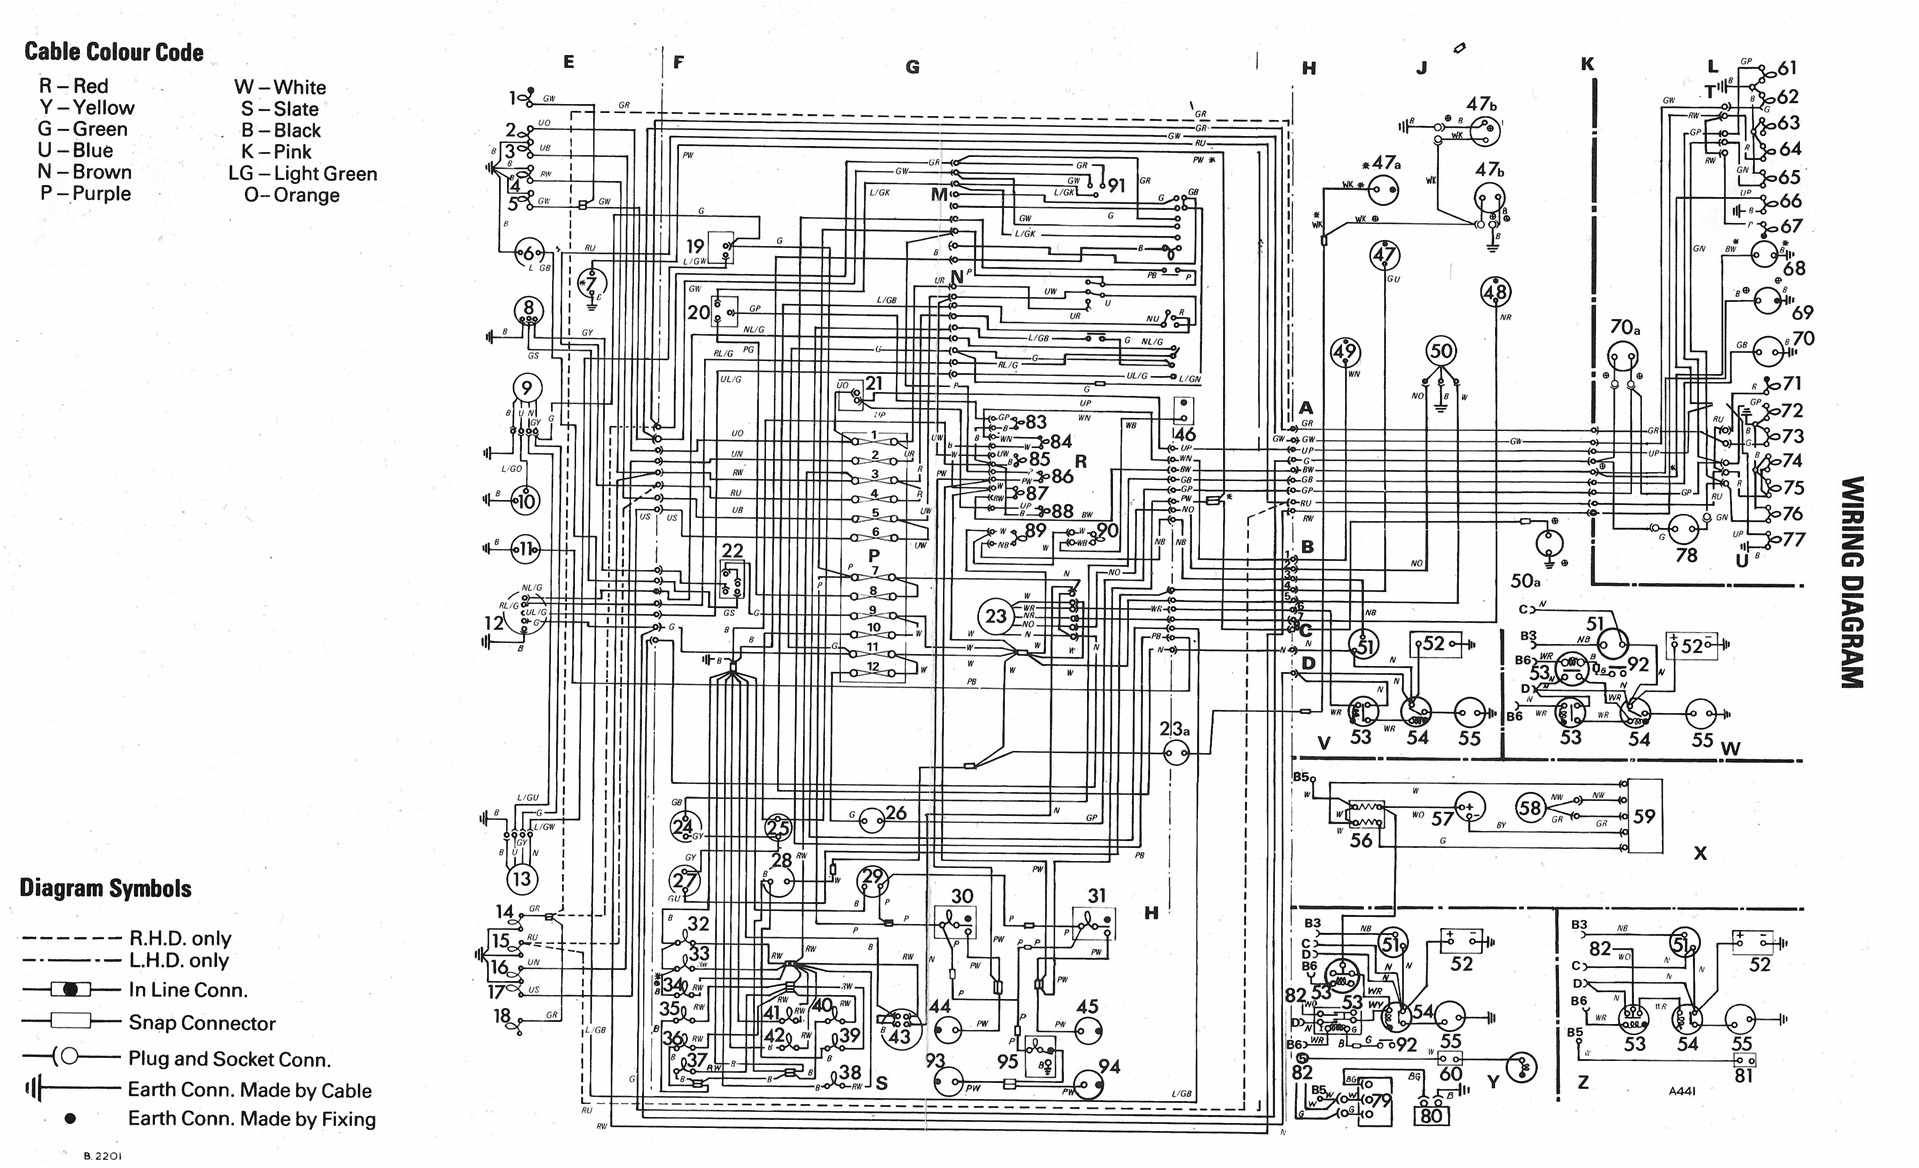 Basic Headlight Wiring Diagram Buick additionally Honda Gl Wiring Diagrams further 1964 Chevy Headlight Switch Wiring Diagram likewise 482800022528094020 additionally 2002 Mitsubishi Eclipse Car Stereo Radio Wiring Diagram. on vw beetle headlight wiring harness